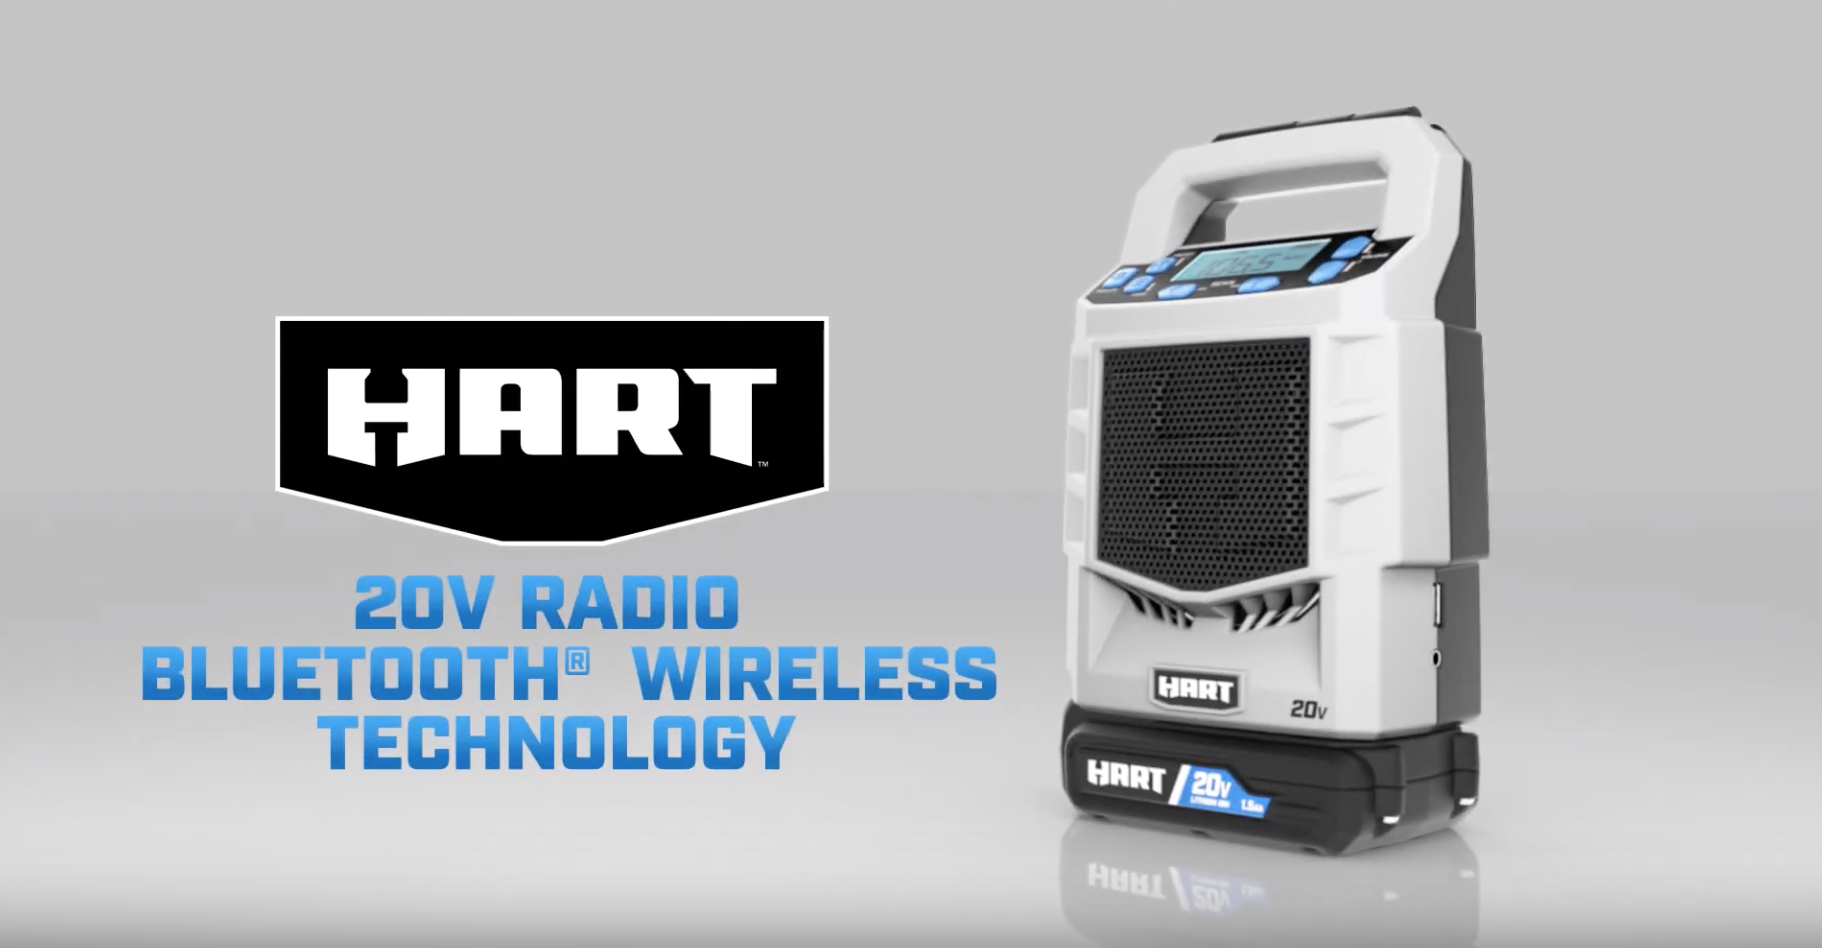 HART 20V Bluetooth Radio